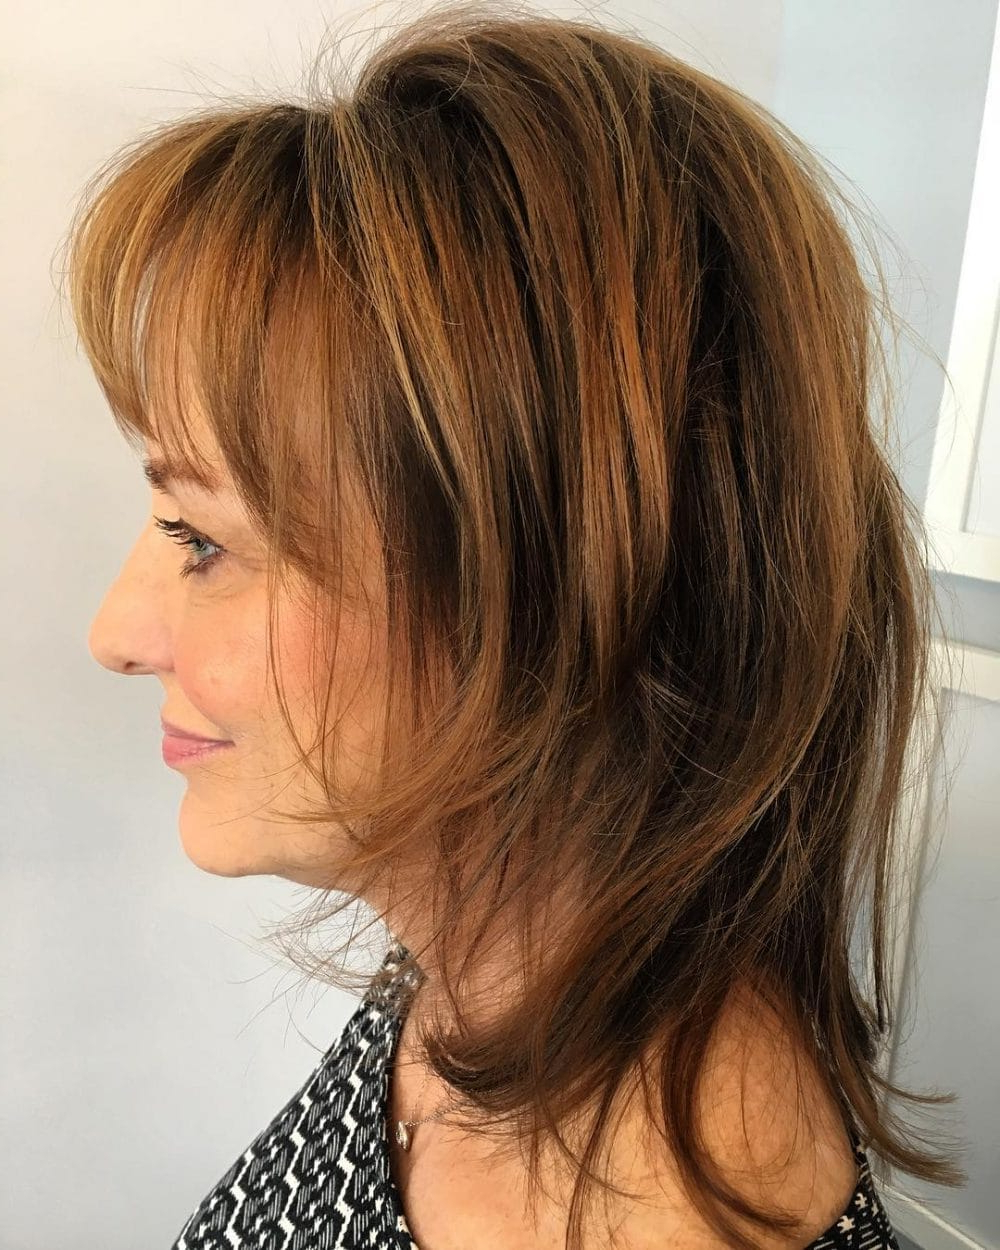 26 Modern Shag Haircuts To Try In 2019 Throughout Layered Waves Shag Haircuts (View 6 of 20)